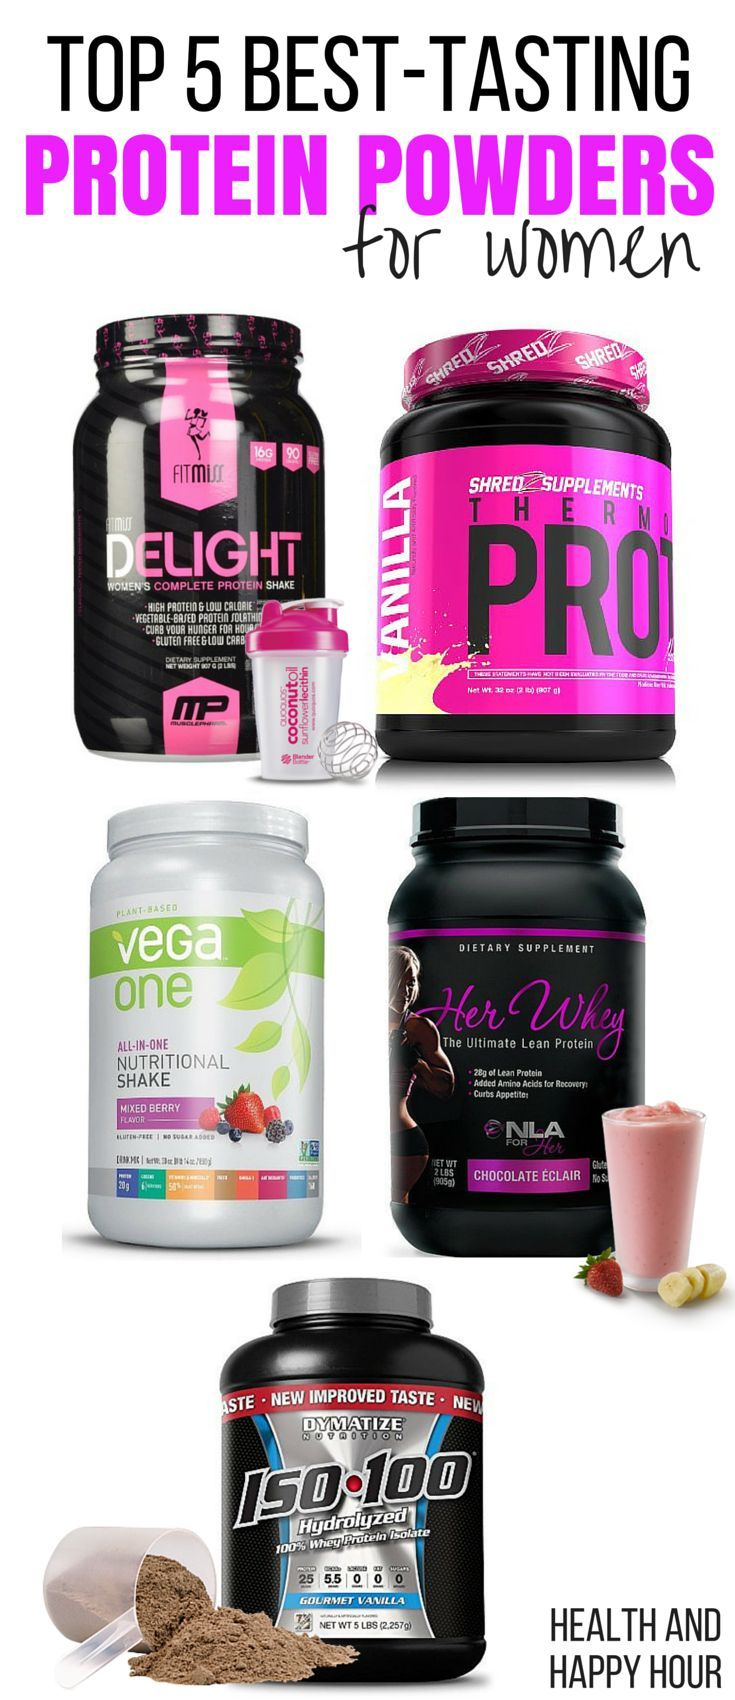 What are good protein shakes for women?